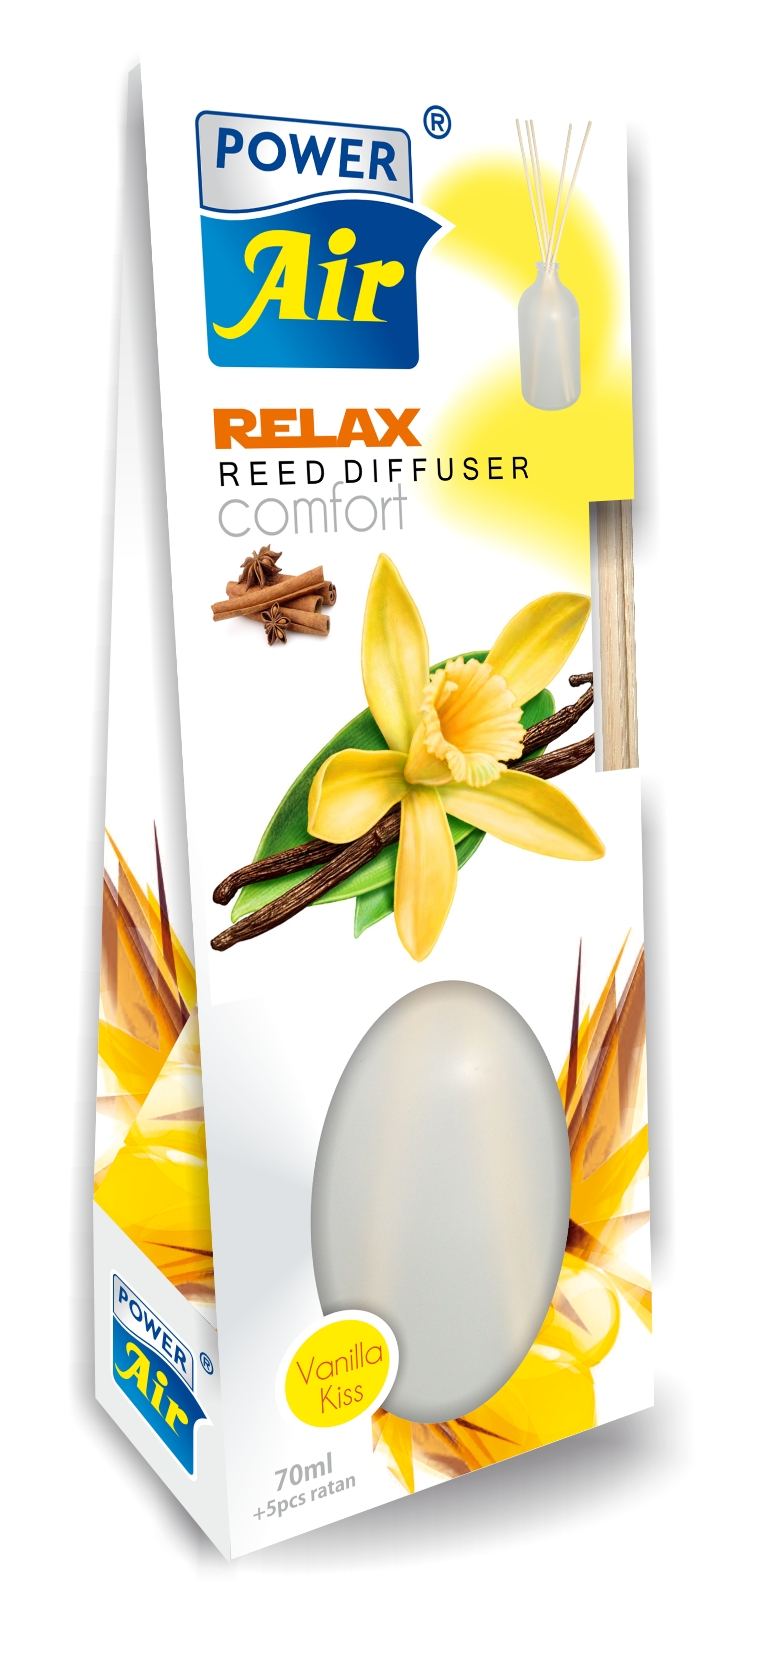 Power Air Relax diffuser 70 ml Vanilla Kiss